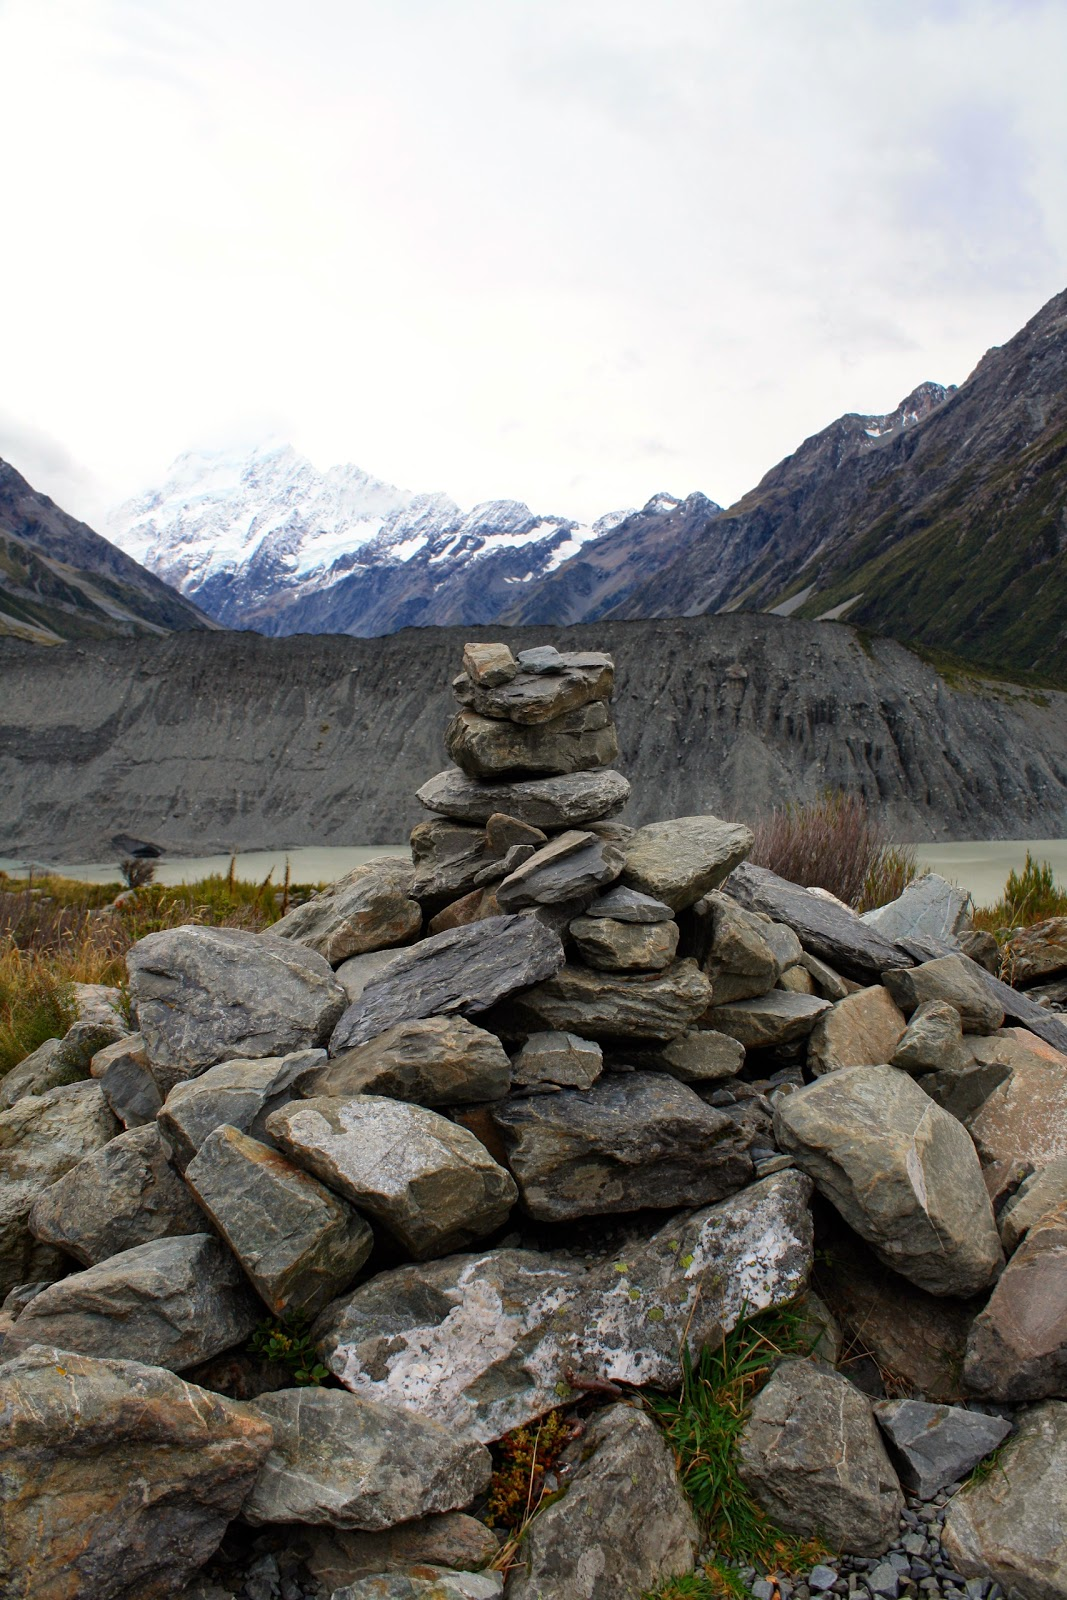 A picture of a cairn of staked rocks in front of Aoraki/Mt Cook in New Zealand's South Island.